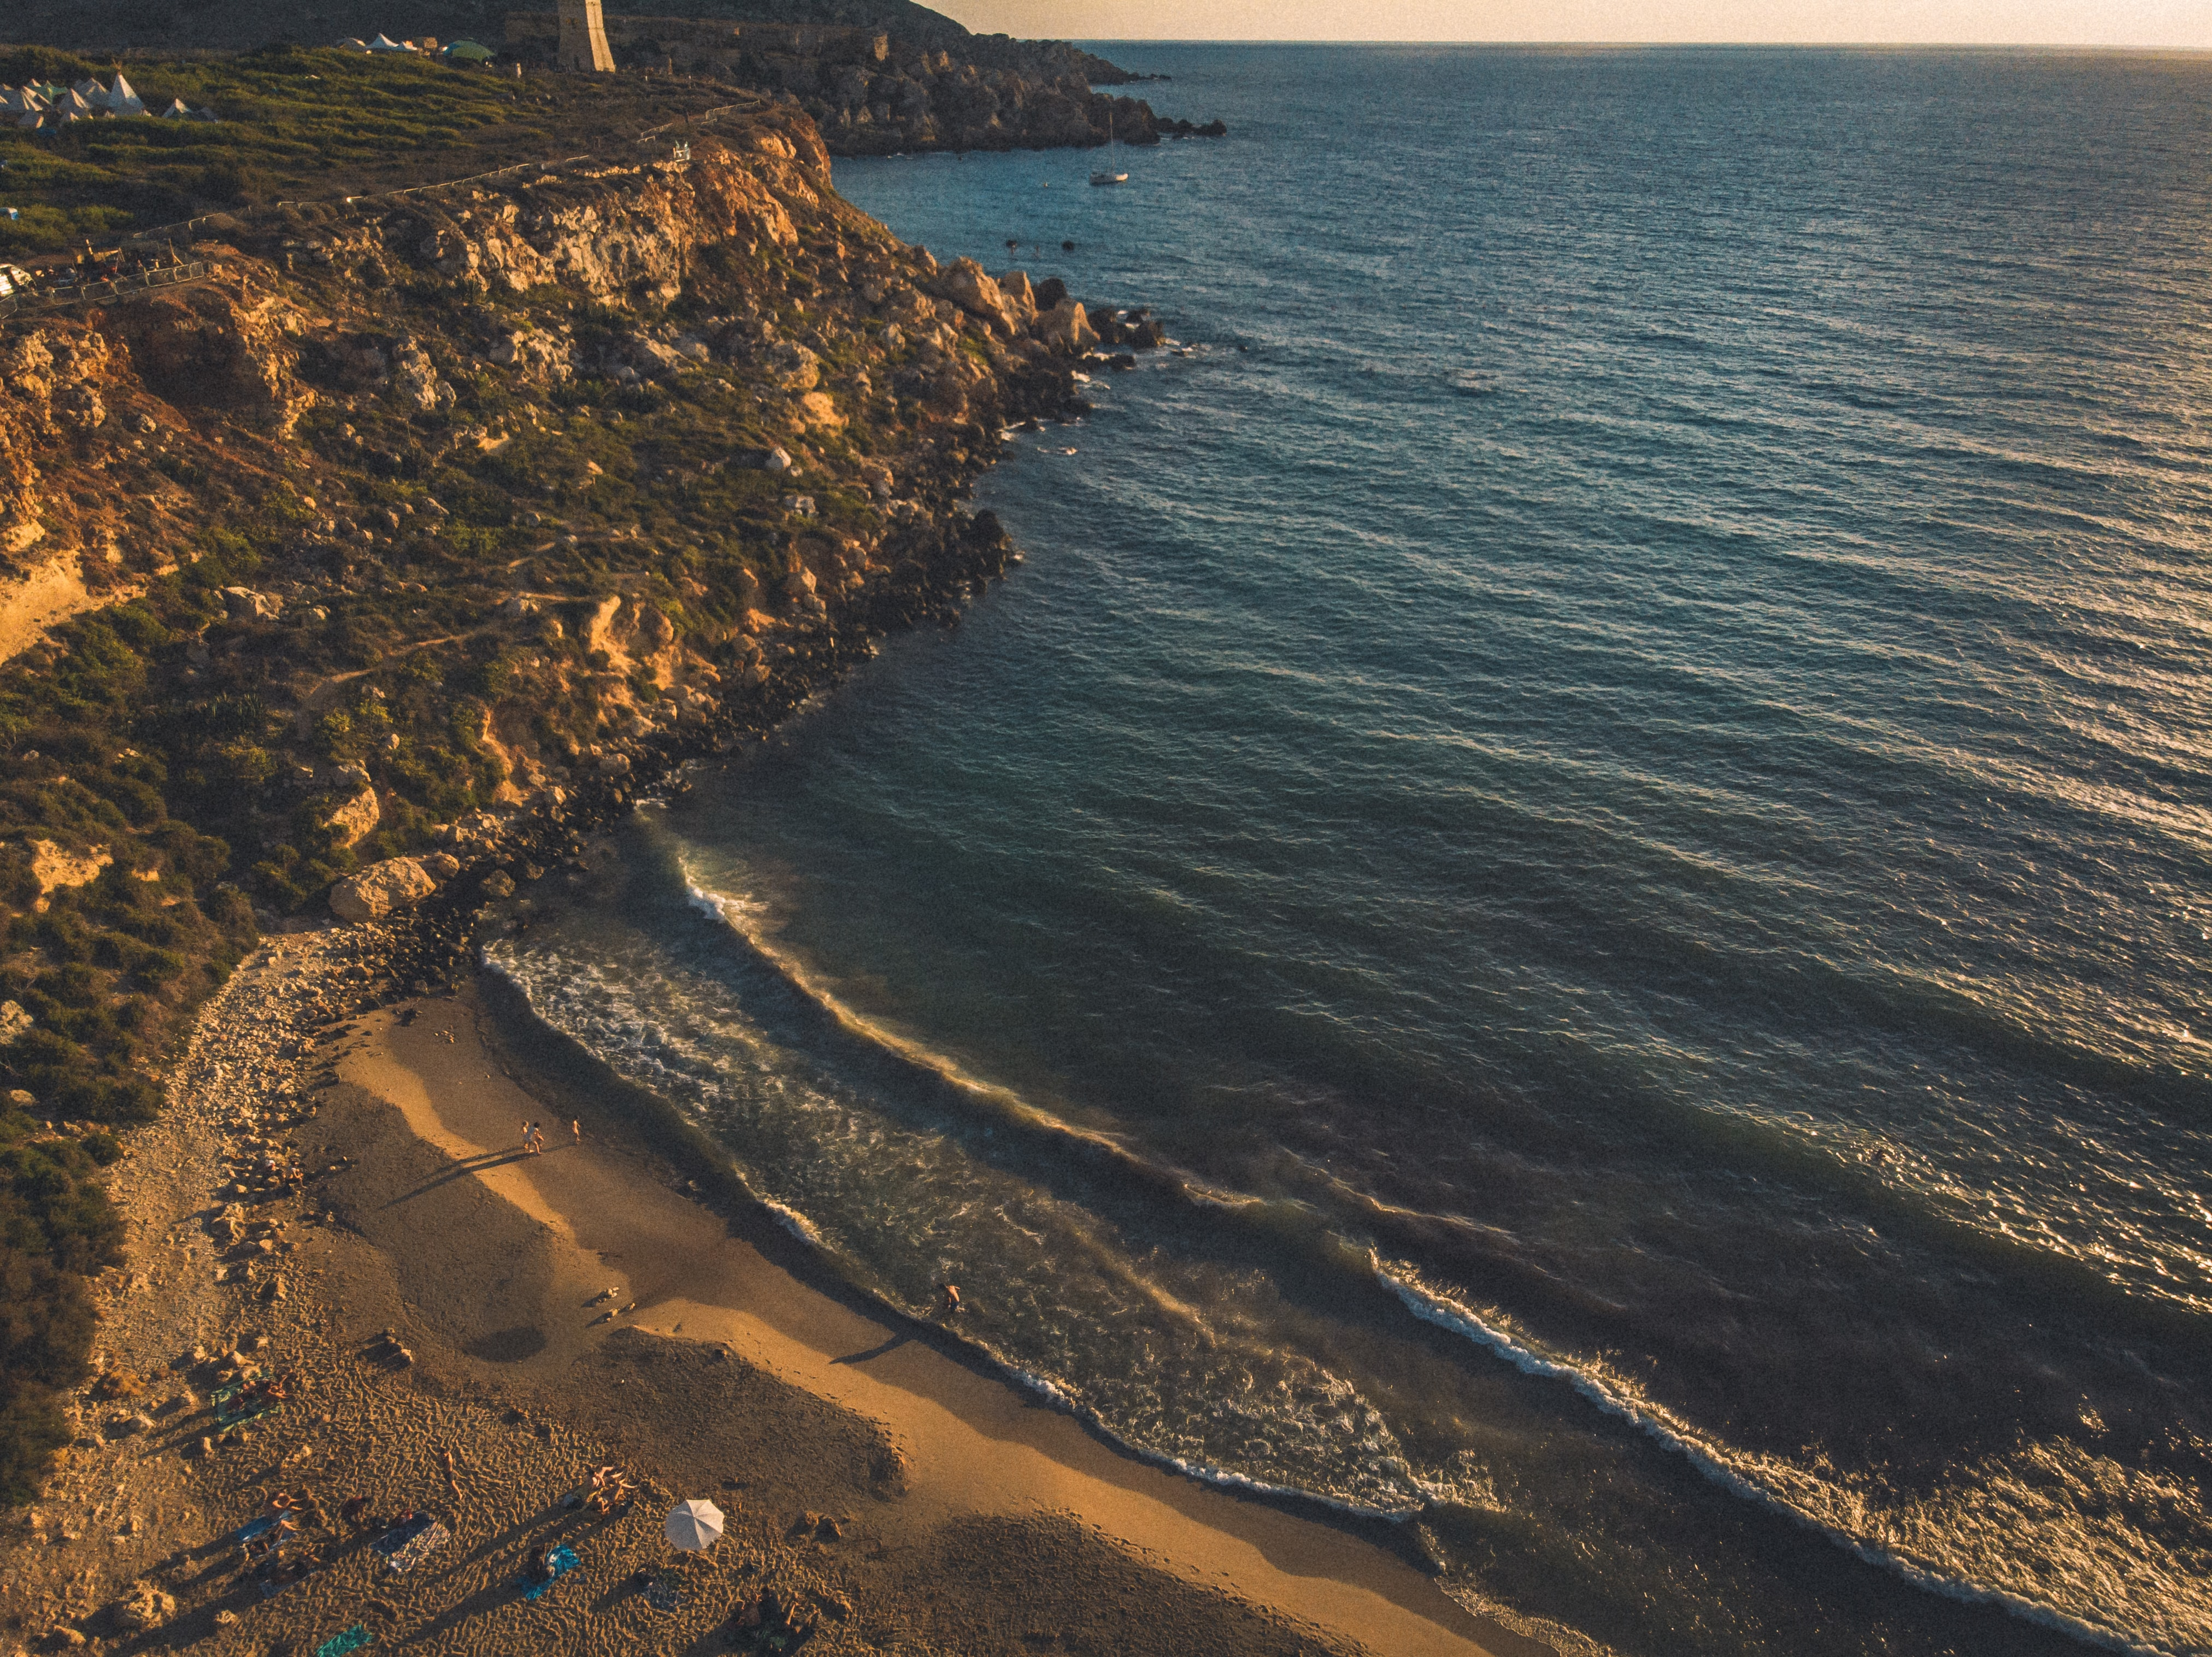 Instagrammable places in Malta, Golden Bay